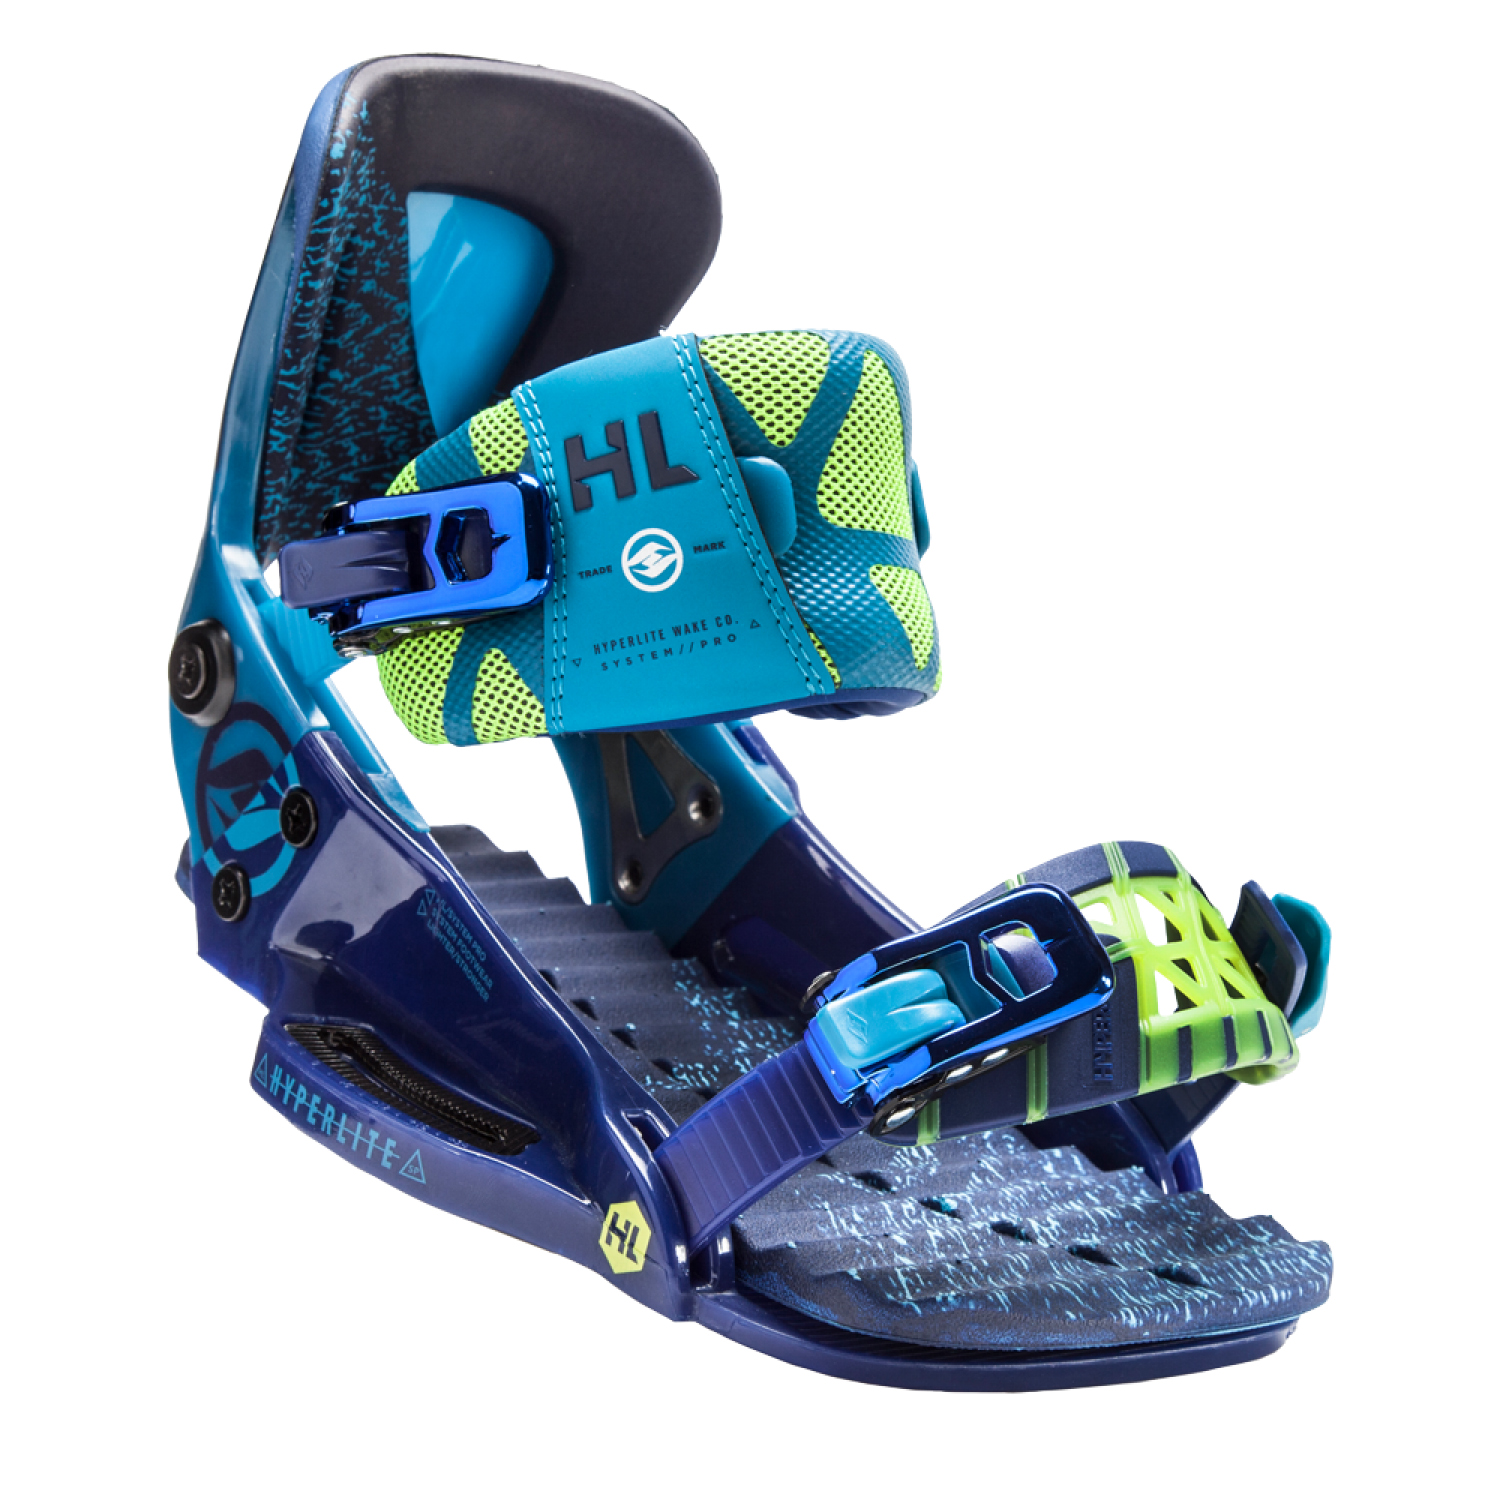 Hyperlite 2018 The System Pro (Blue Shades) Wakeboard Bindings-6-9 by